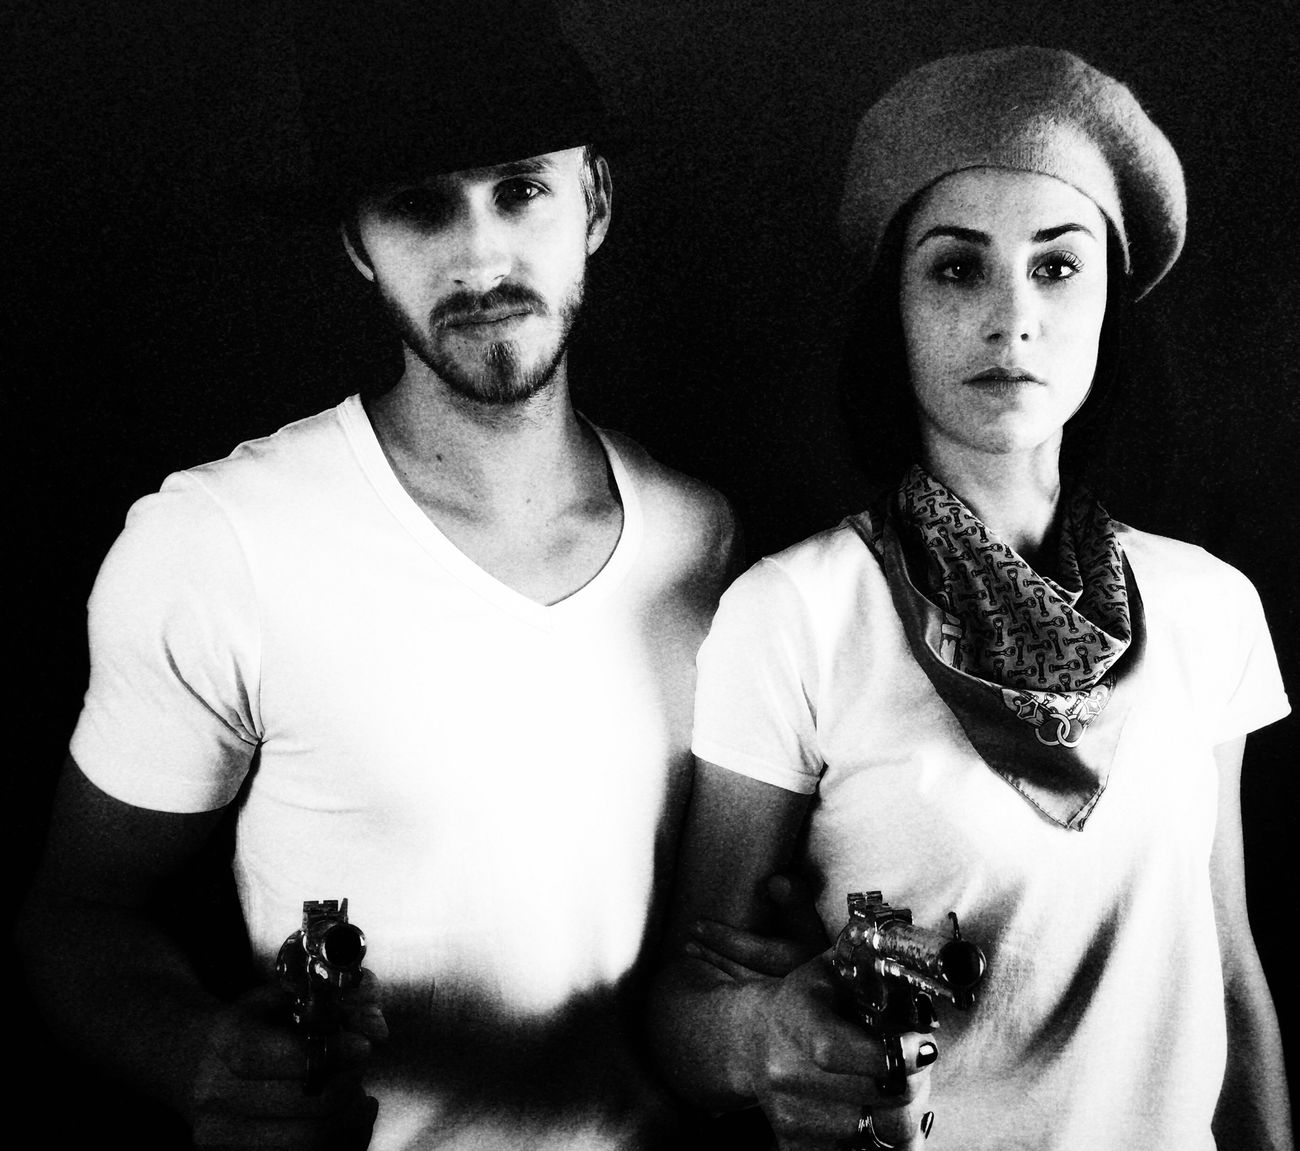 Bonnie and Clyde... Model Shoot Actor Actress Simple Beauty Onlywithiphone Photoshoot Moviestar MOVIE Faces Of EyeEm Taking Photos IPhoneography Blackandwhite Photography Blackandwhite Model Black & White